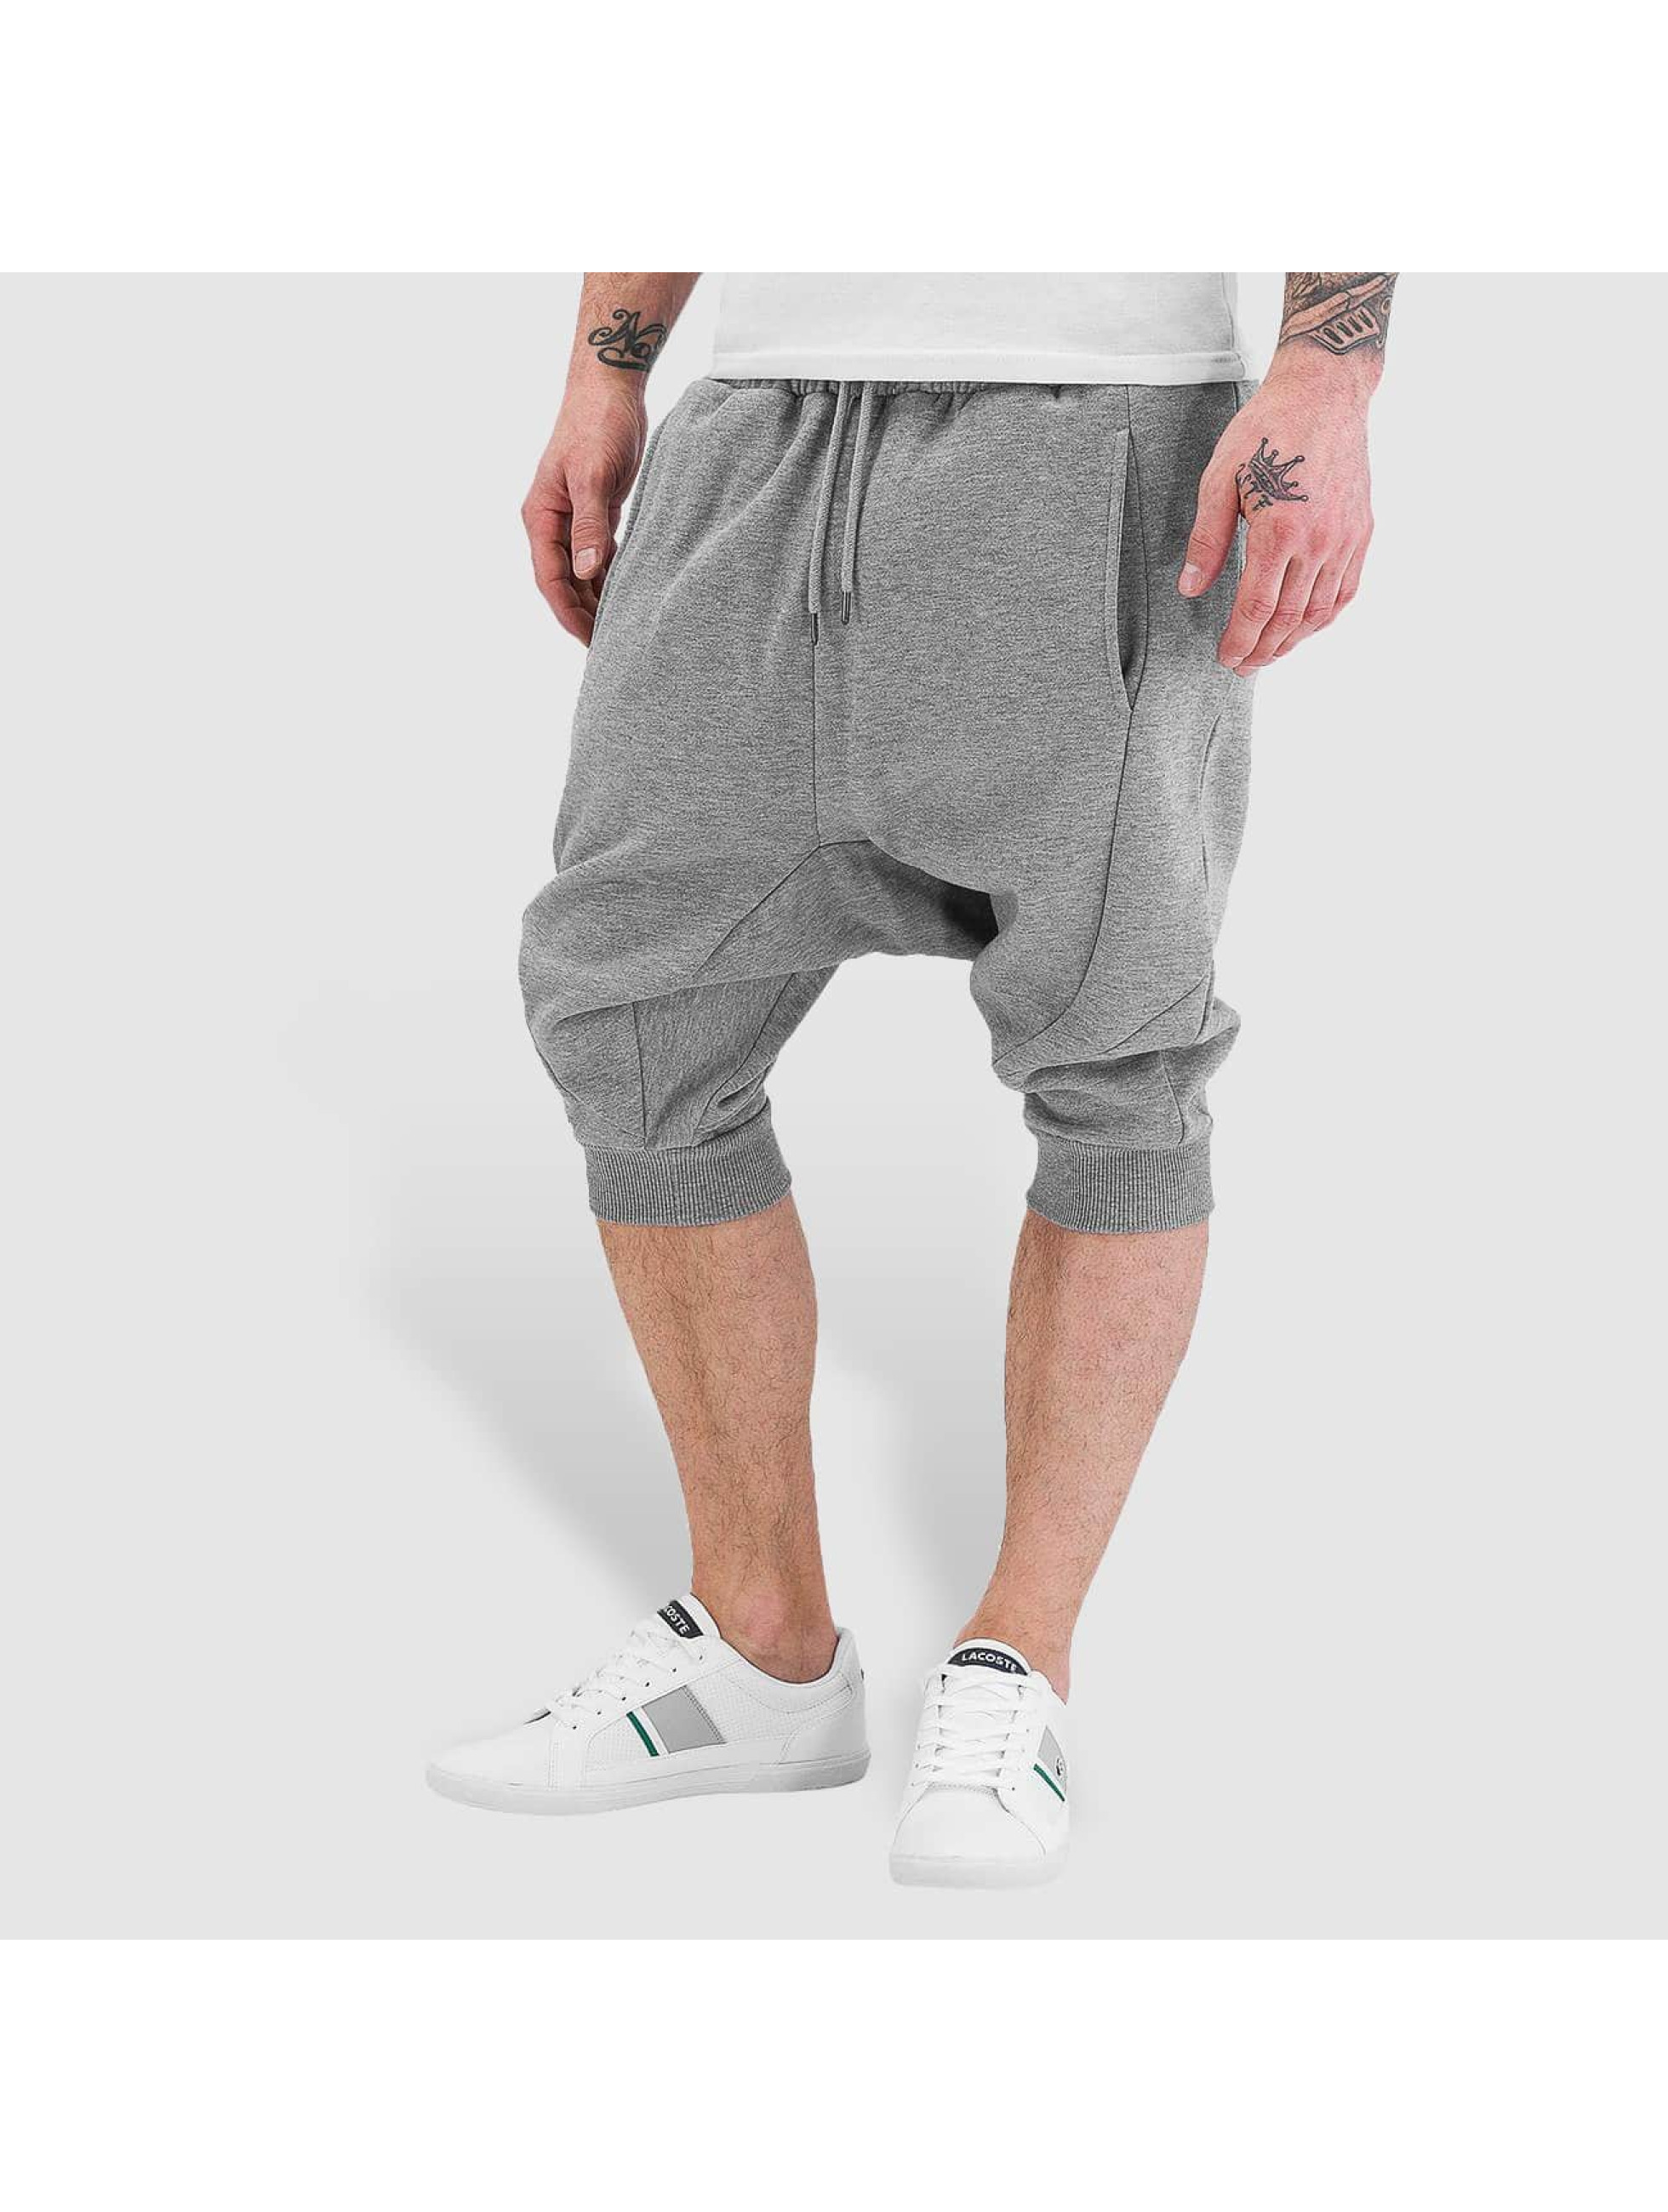 Urban Classics Shorts Deep Crotch Undefined grau